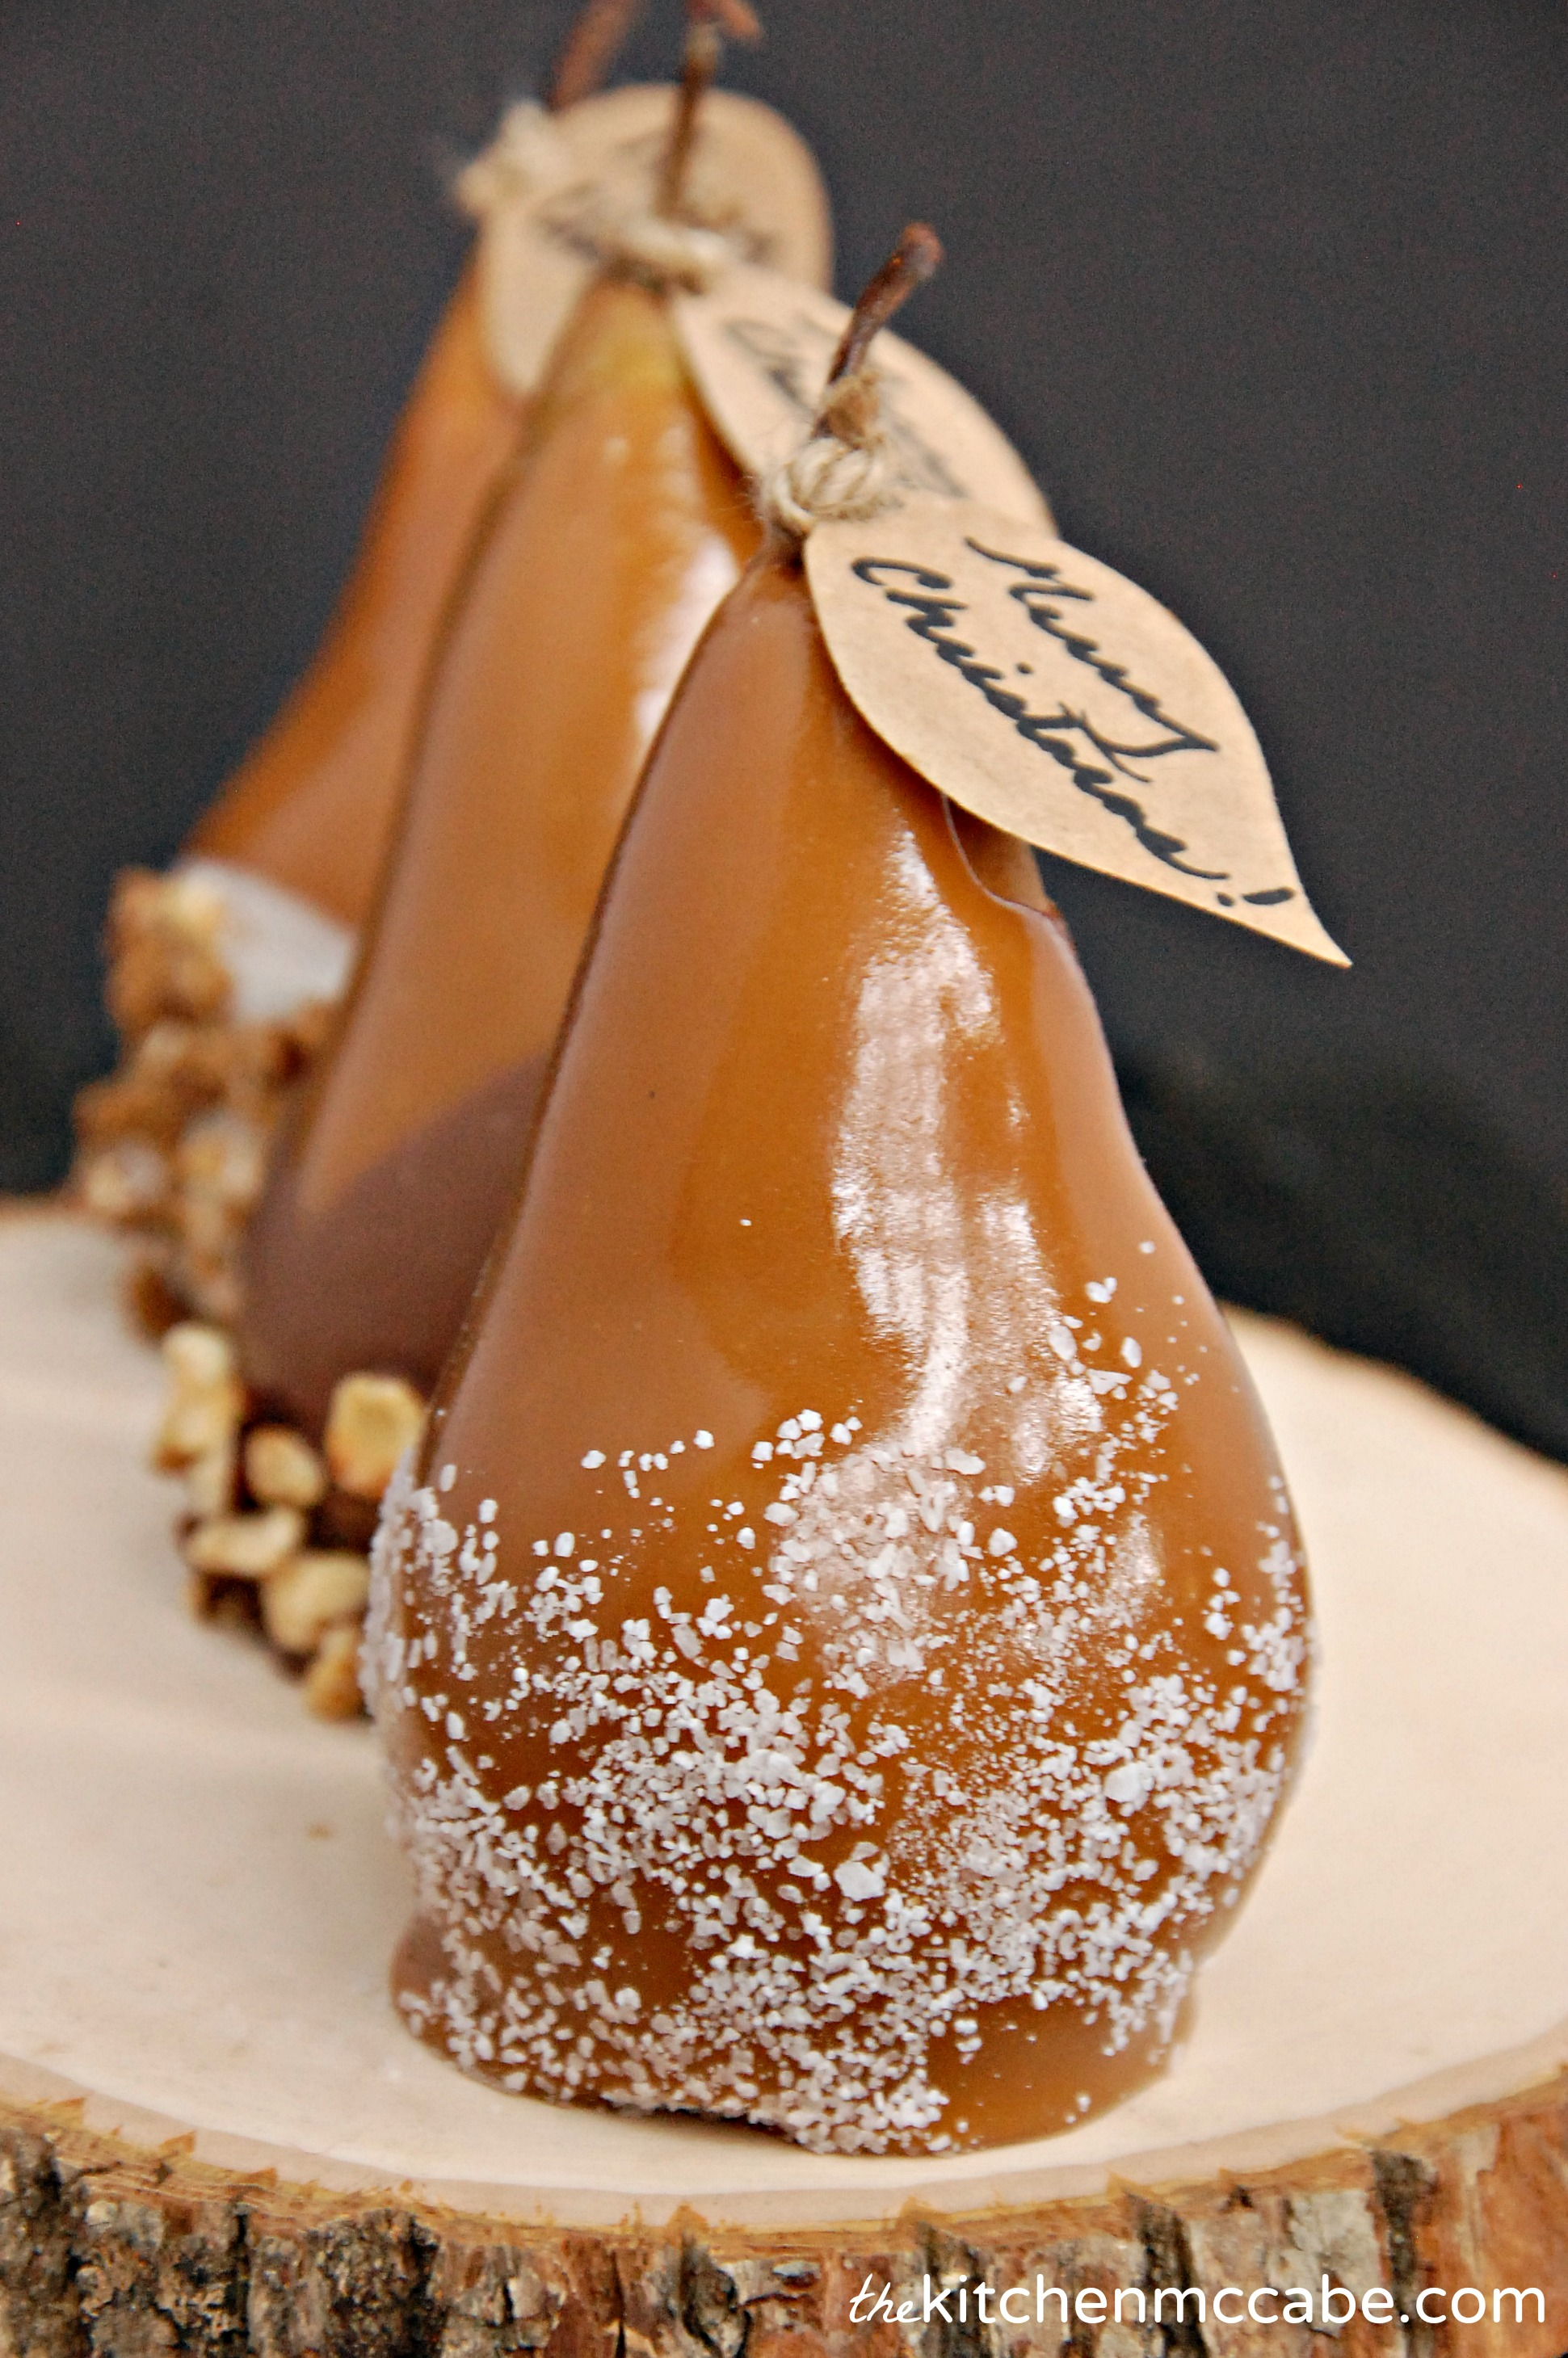 Caramel Dipped Pears - The Kitchen McCabe